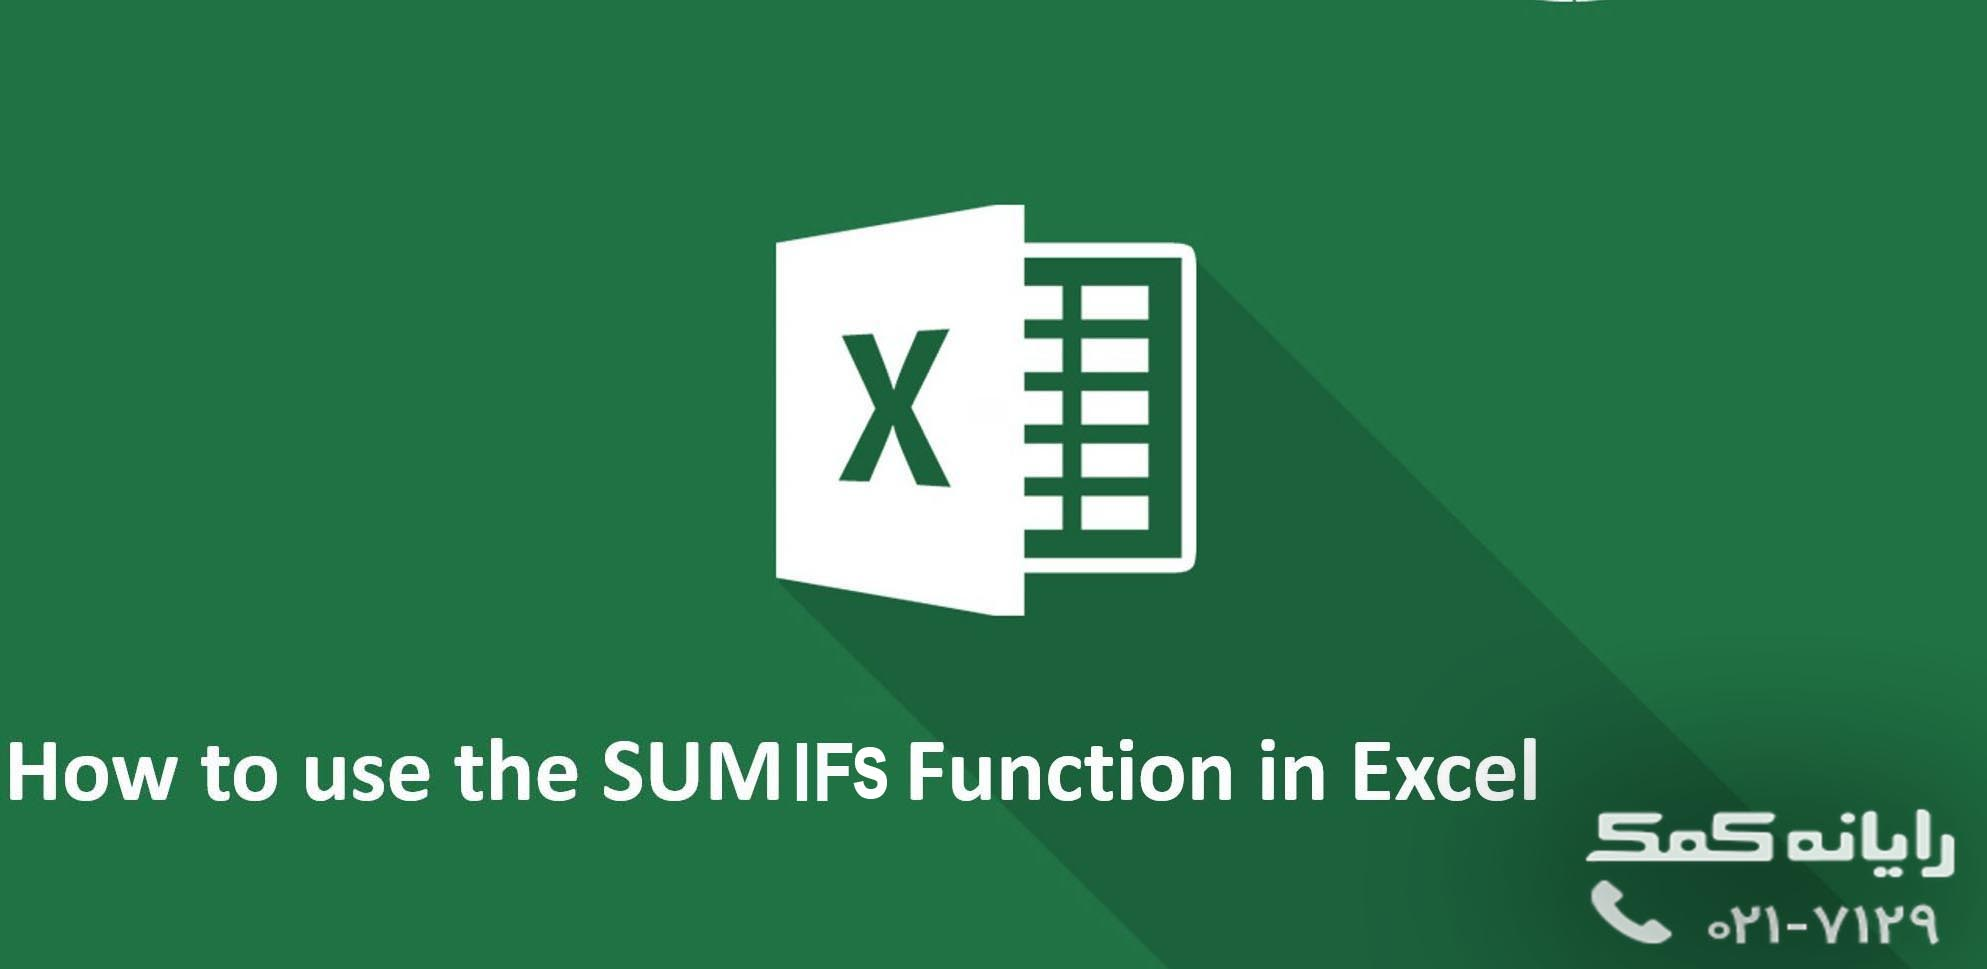 rayanekomak-How-to-use-the-SUM-Function-in-Excel